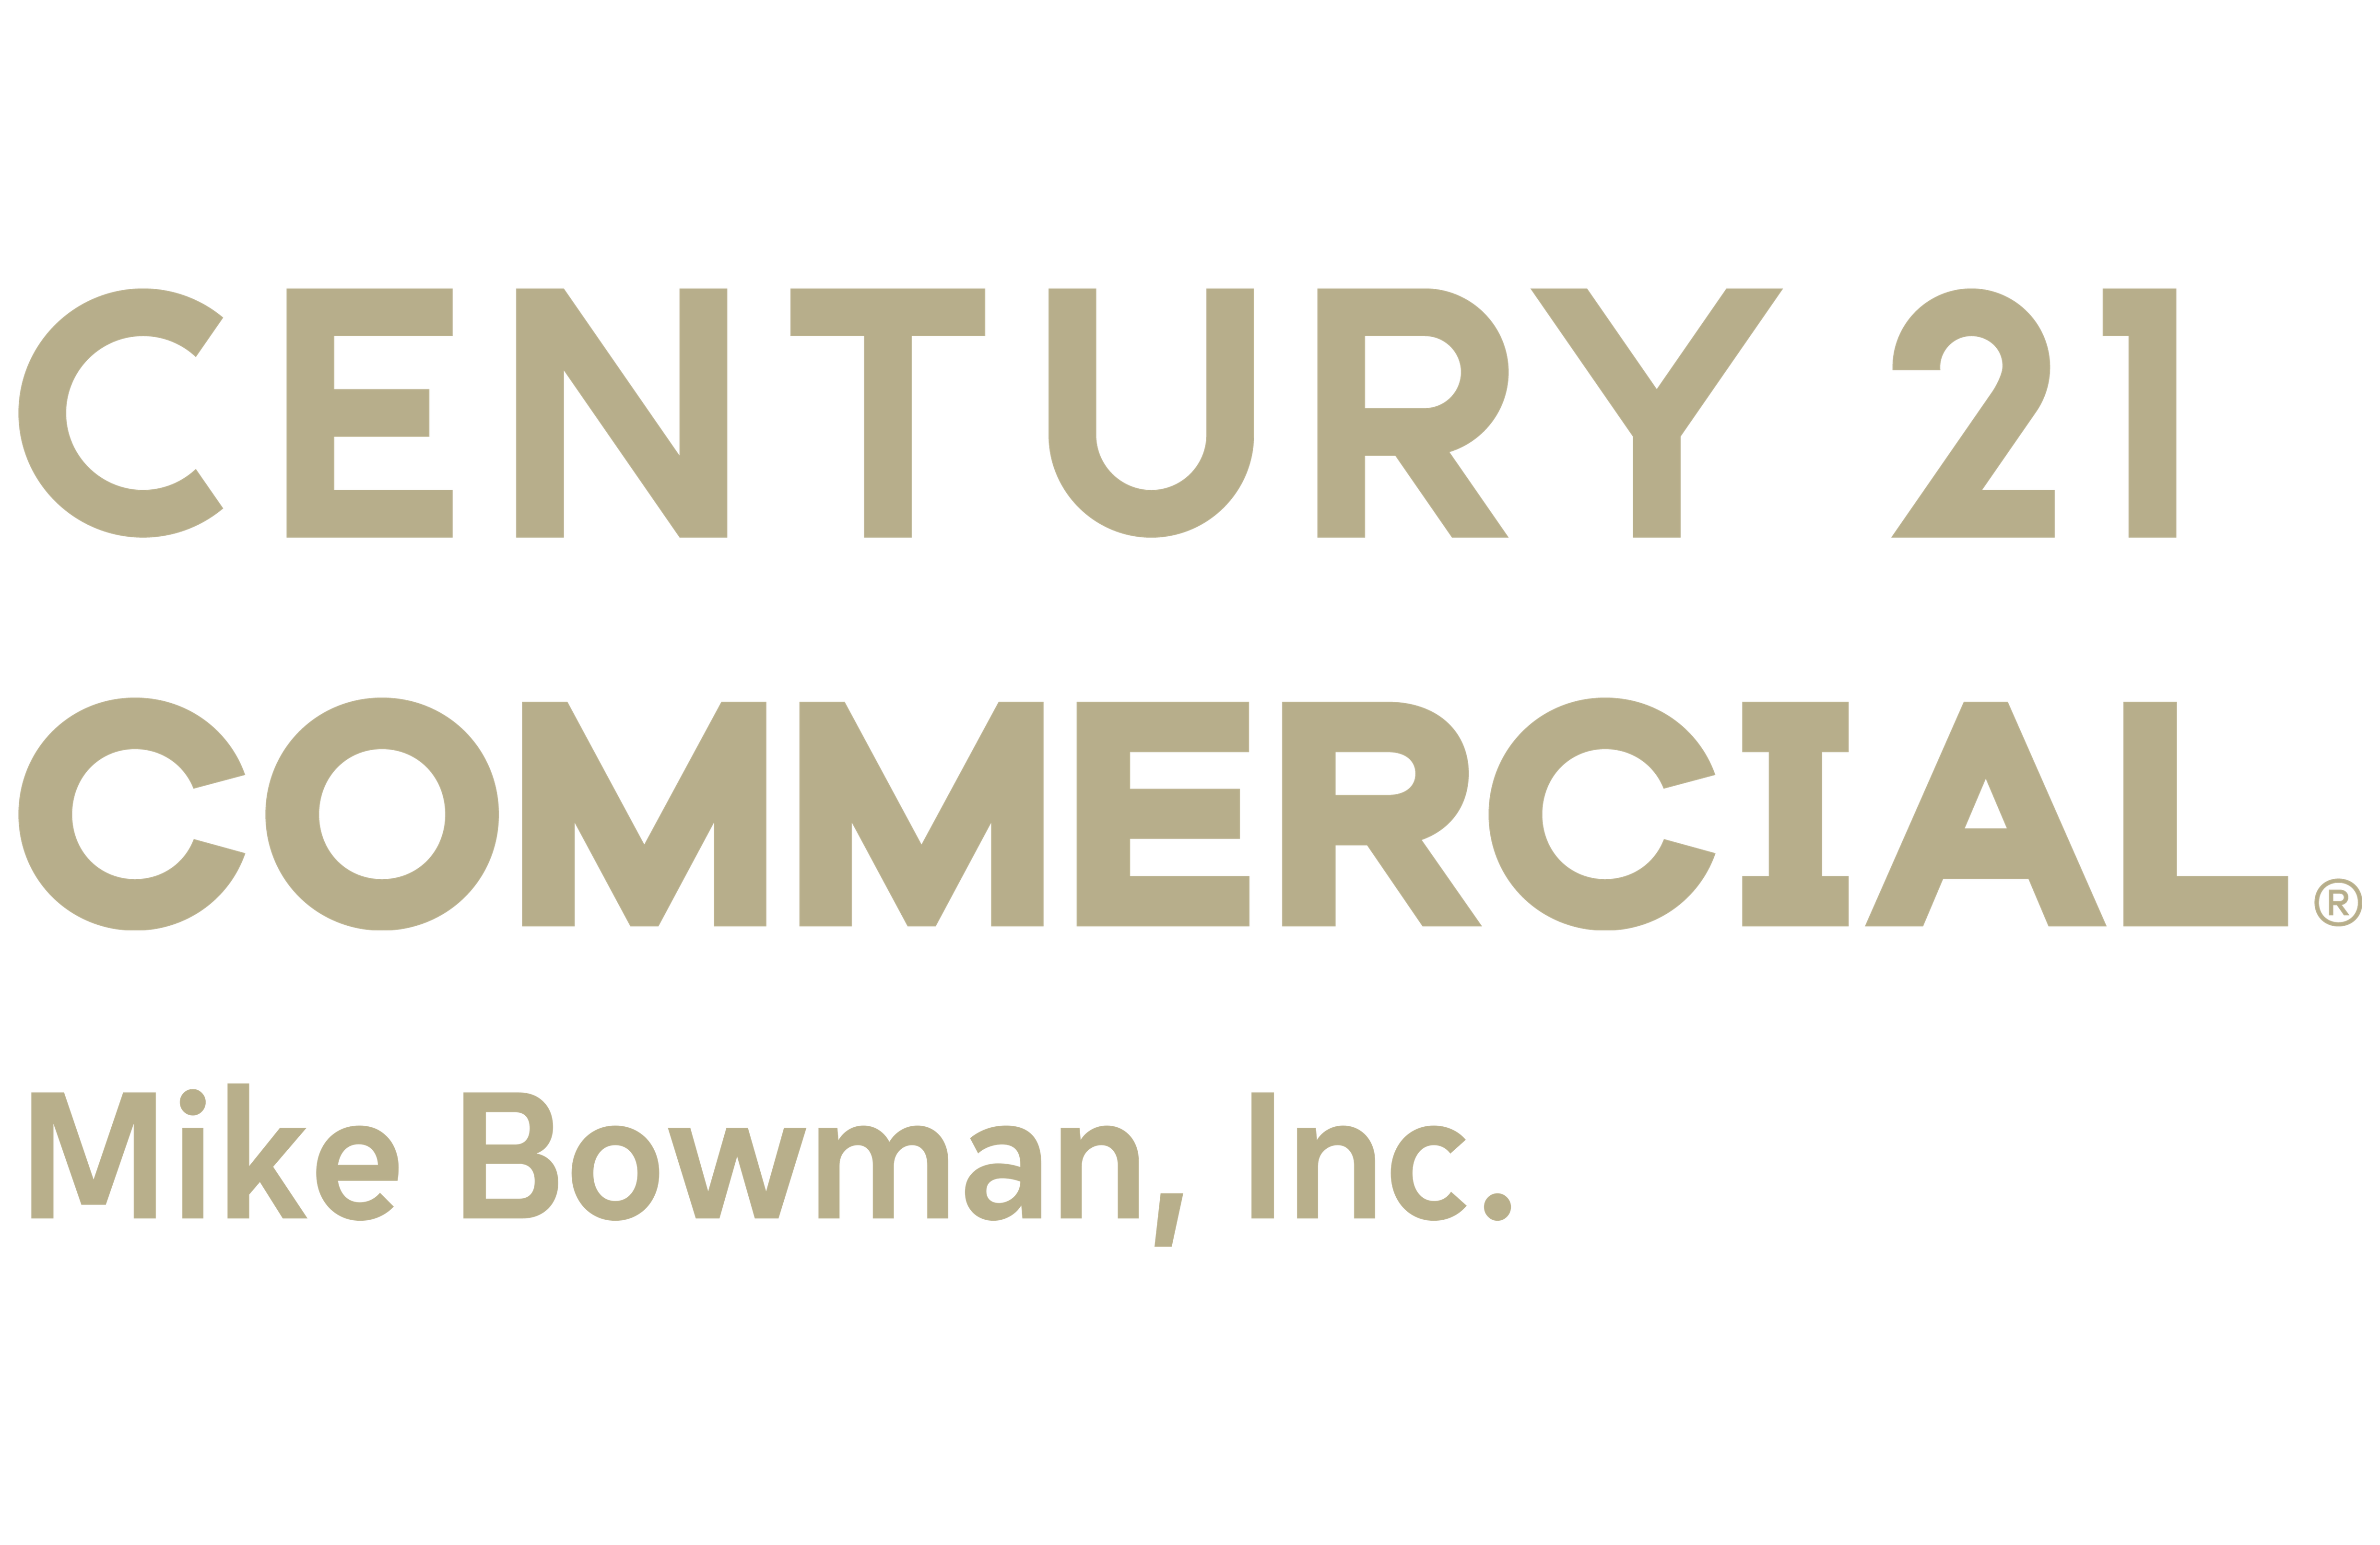 HKC Group of CENTURY 21 Mike Bowman, Inc. logo